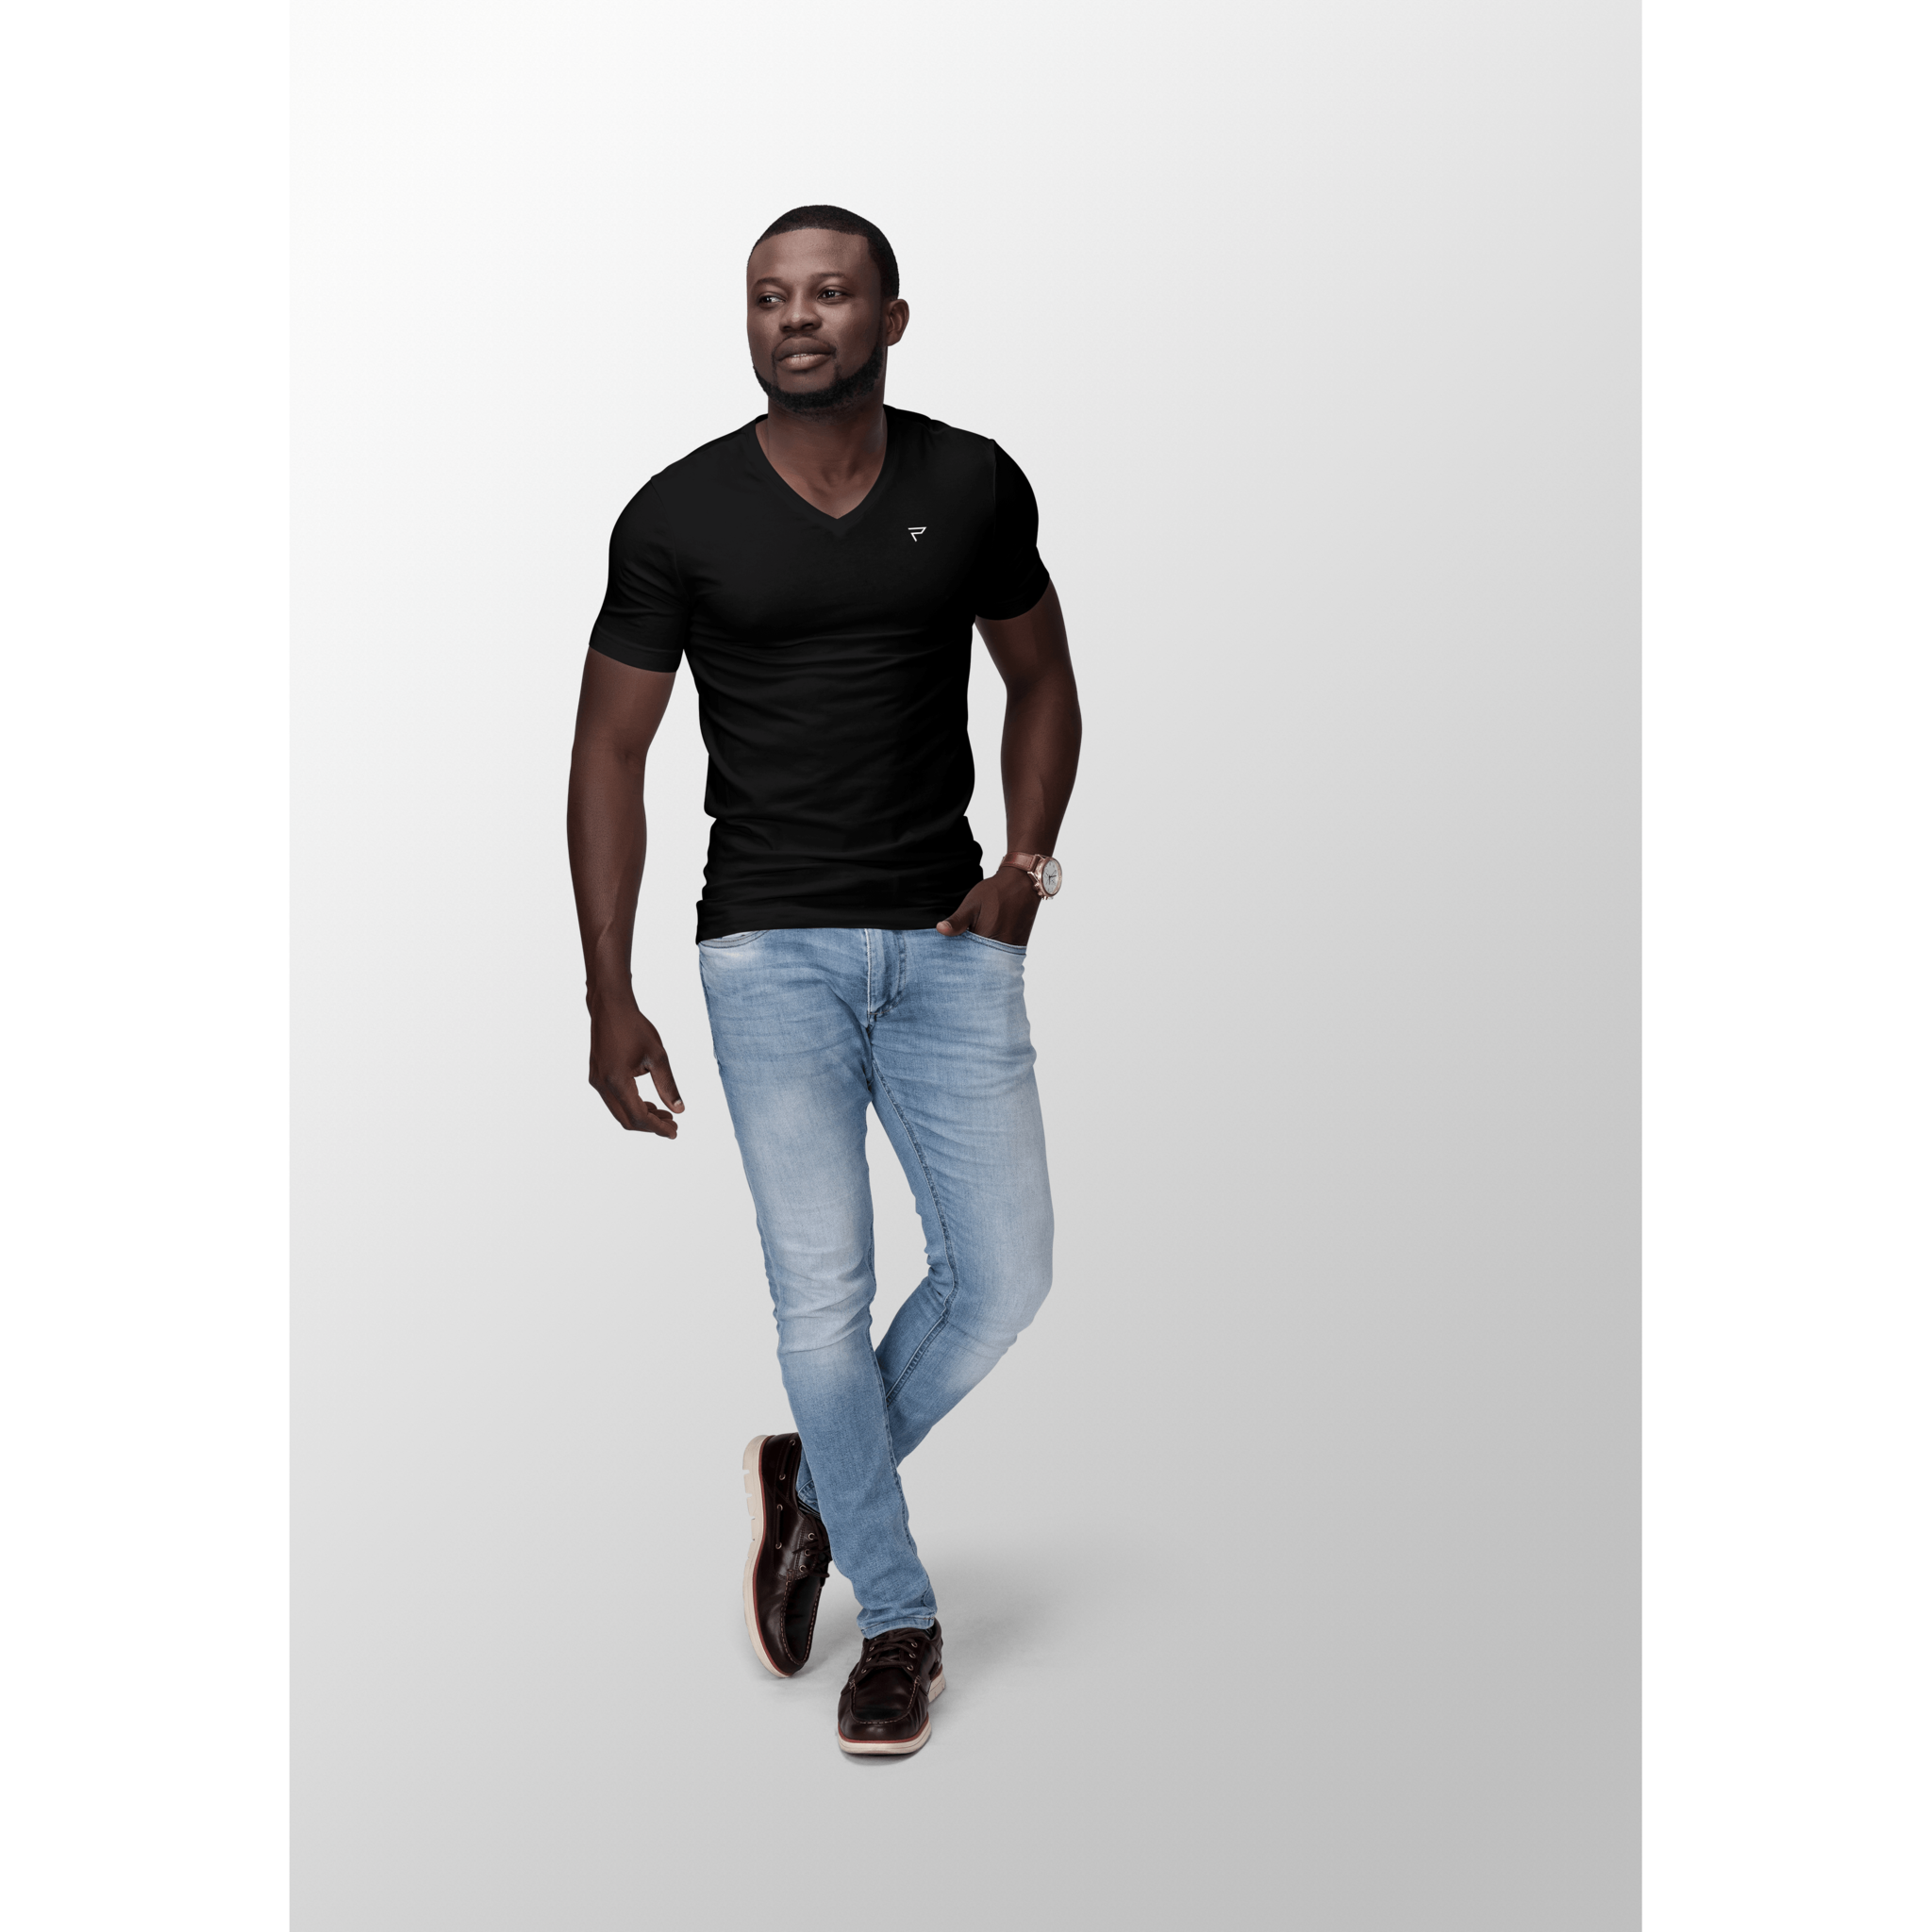 PRESTIGIO MEN's V-neck slim fit